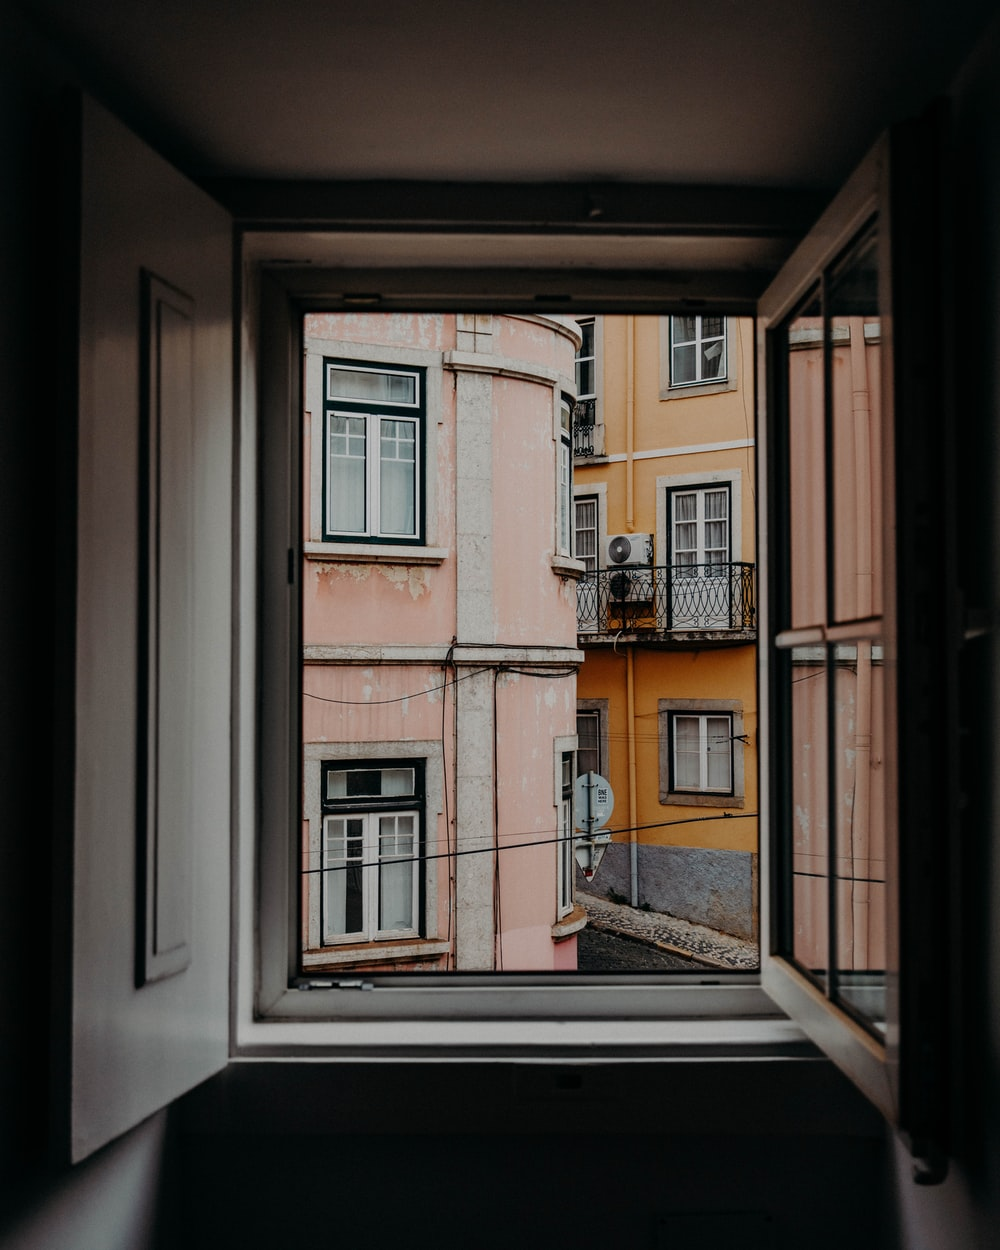 wooden window opened with view of concrete buildings